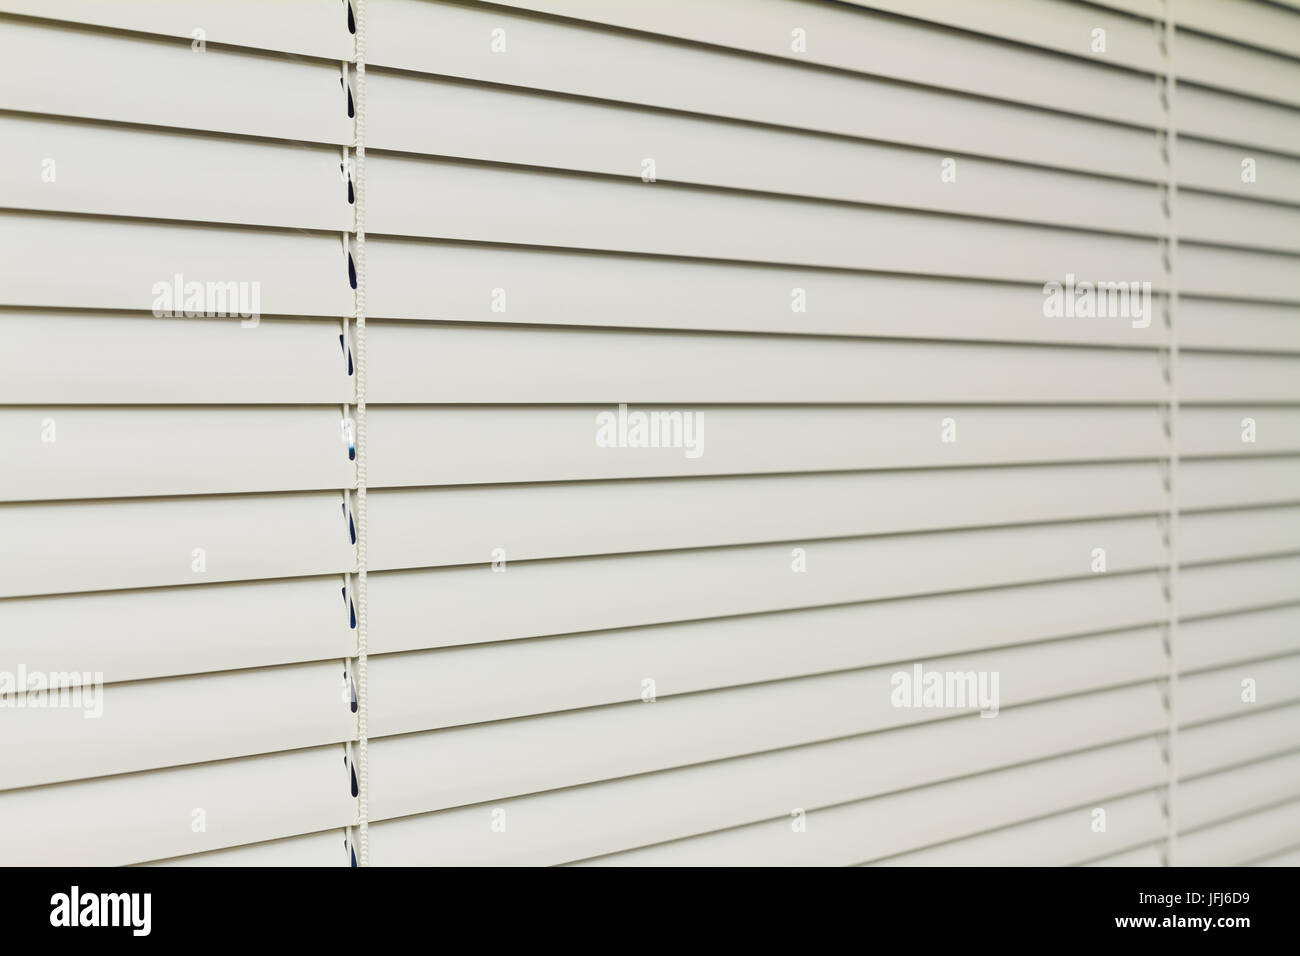 alibaba suppliers hot silver blinds outdoor showroom com aluminum manufacturers metal and sale at